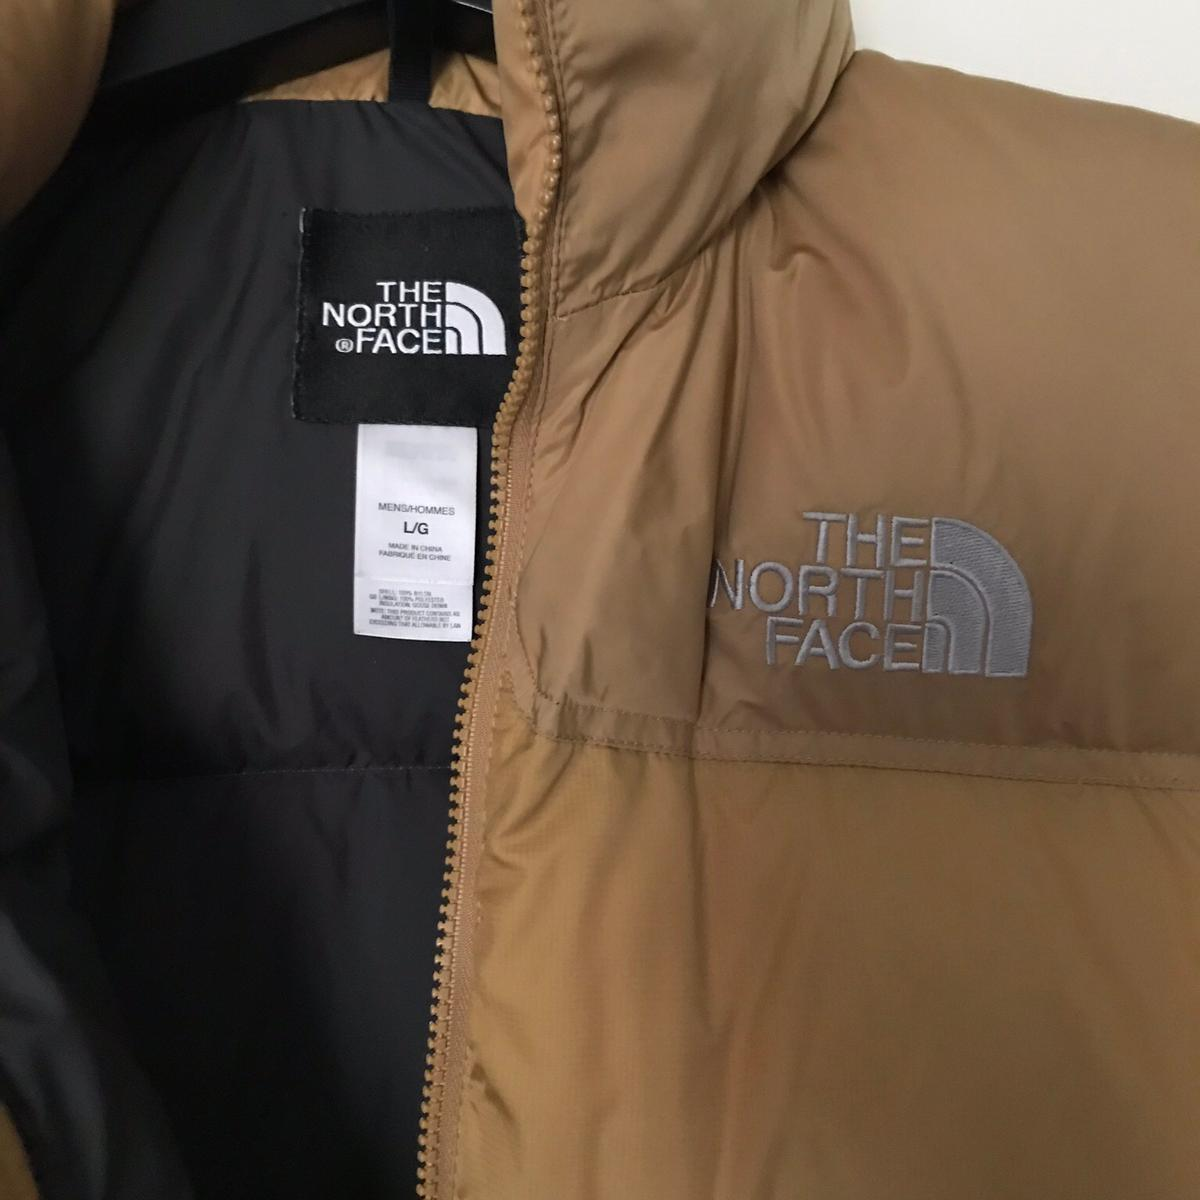 lowest price 2c02b 29560 North Face Weste Adidas Nike Daunen